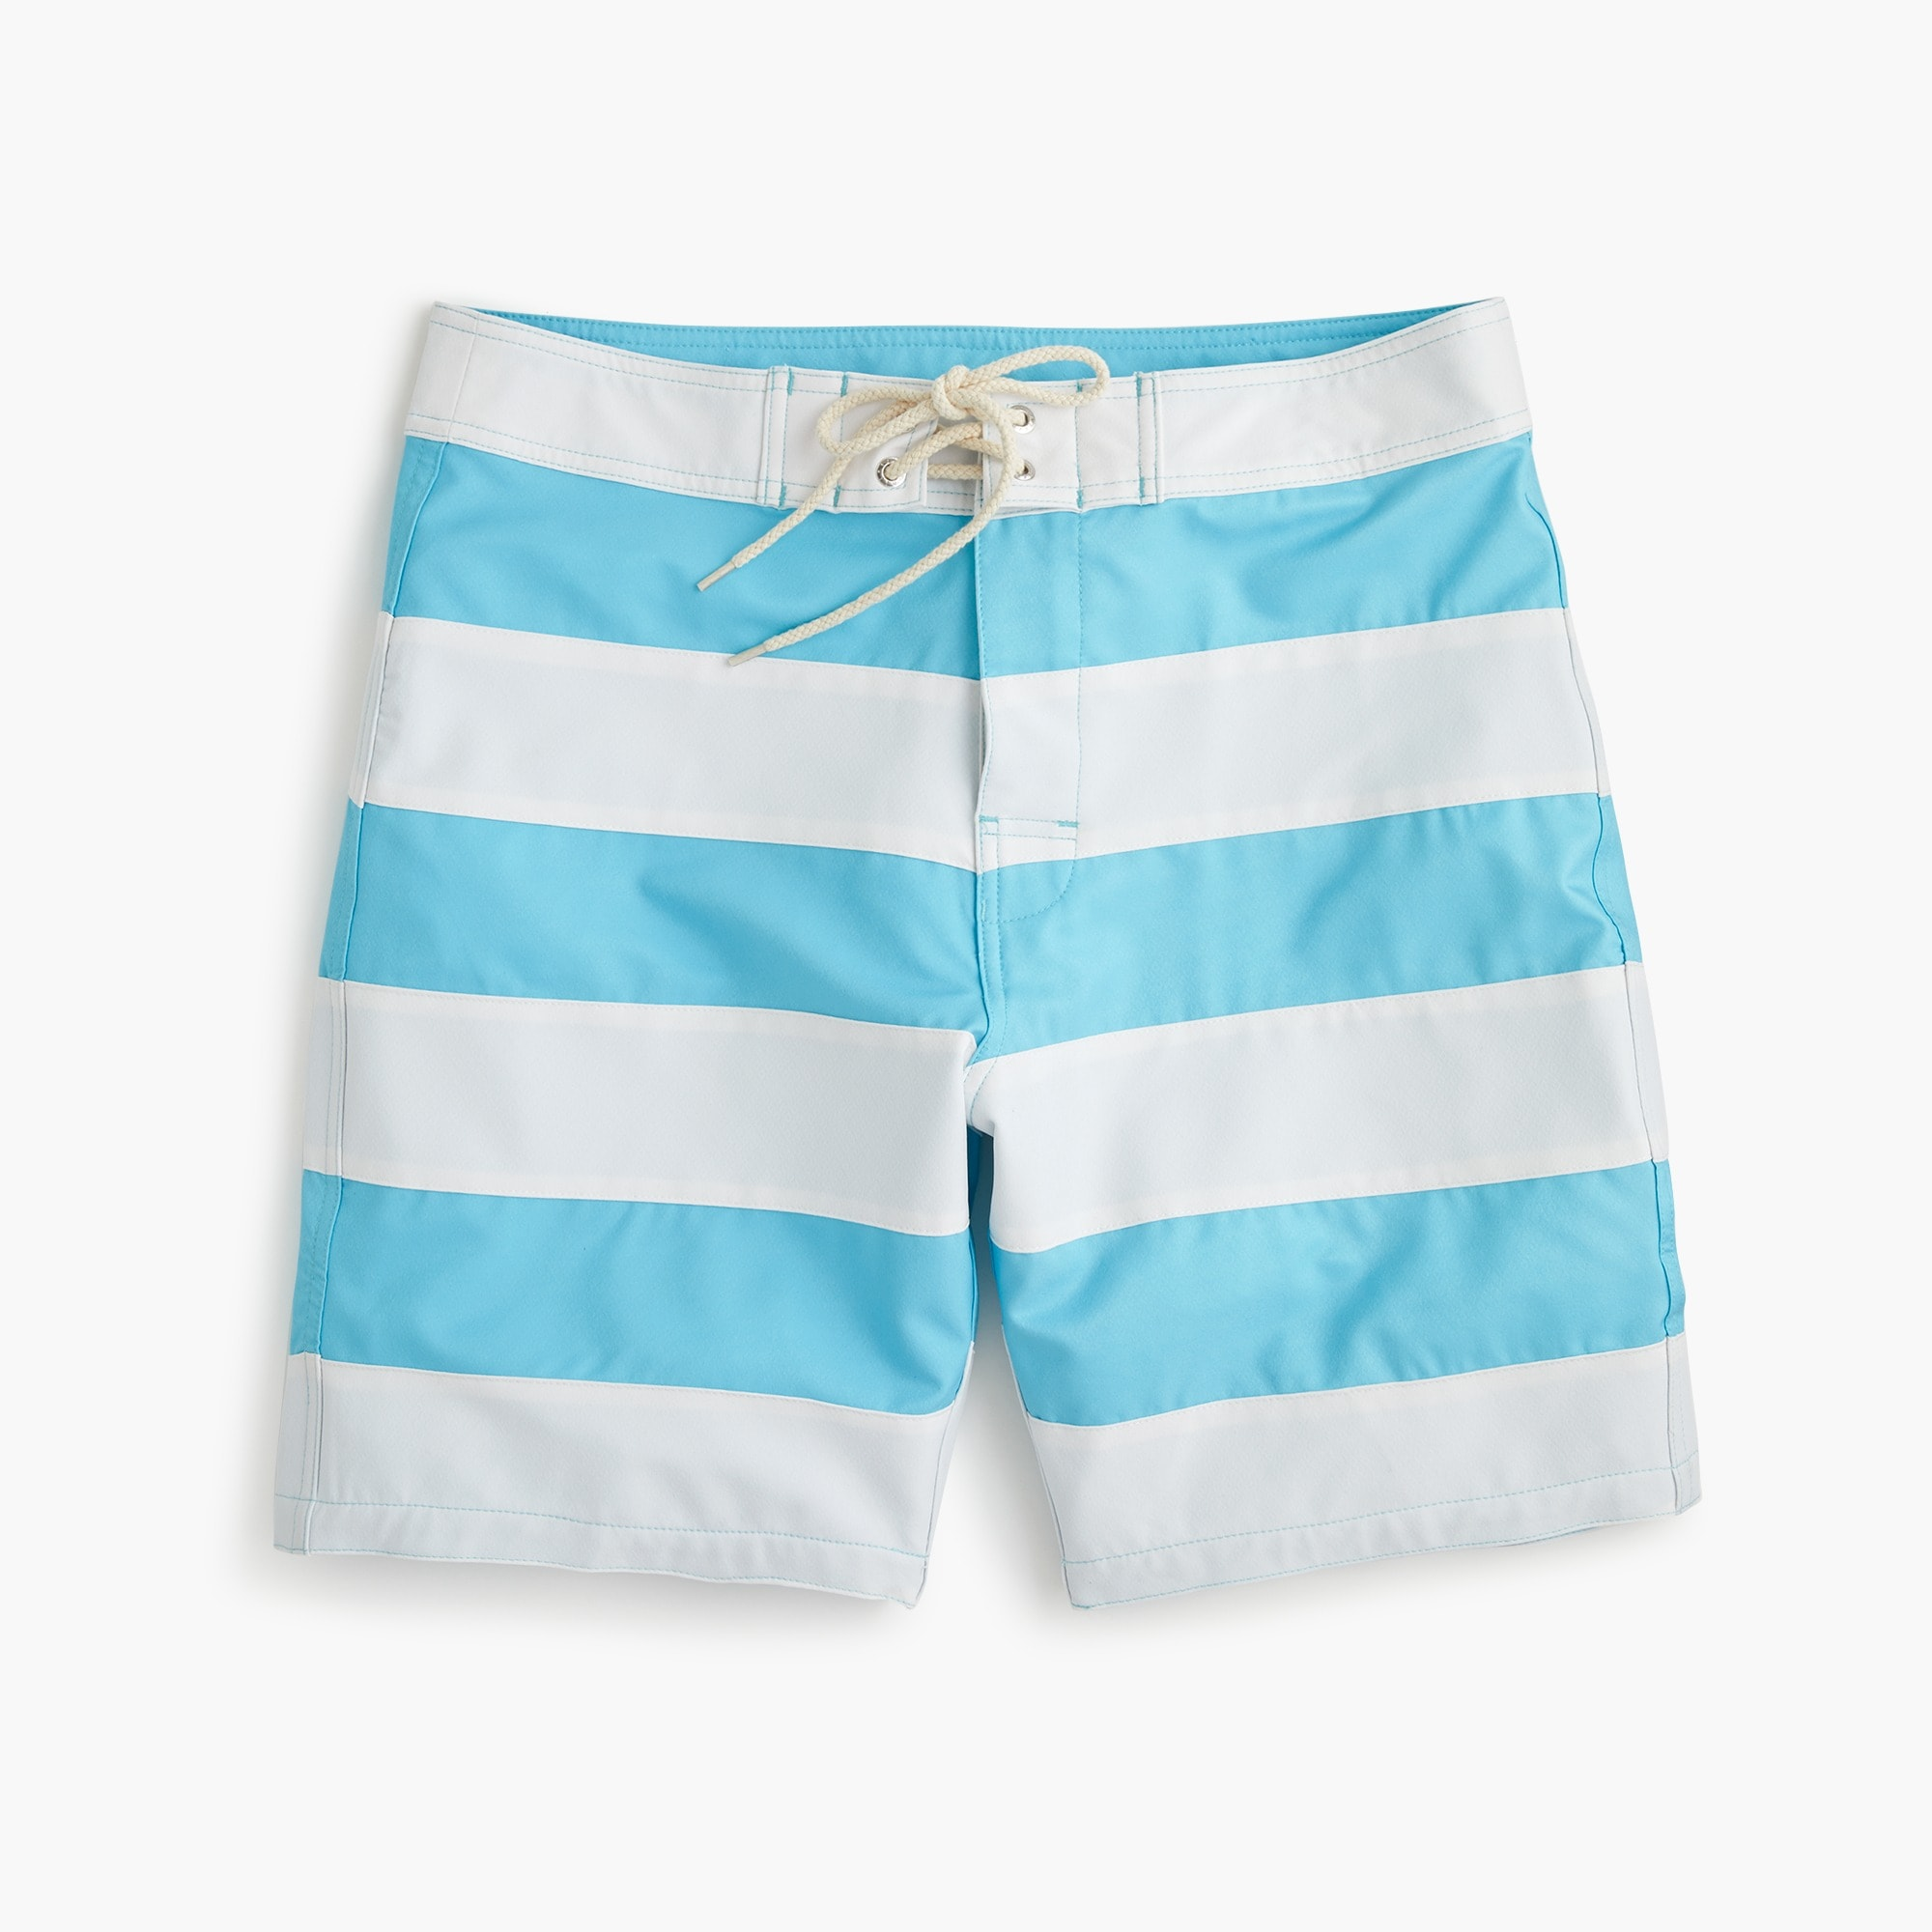 Image 1 for Greenlines® swim boardshort